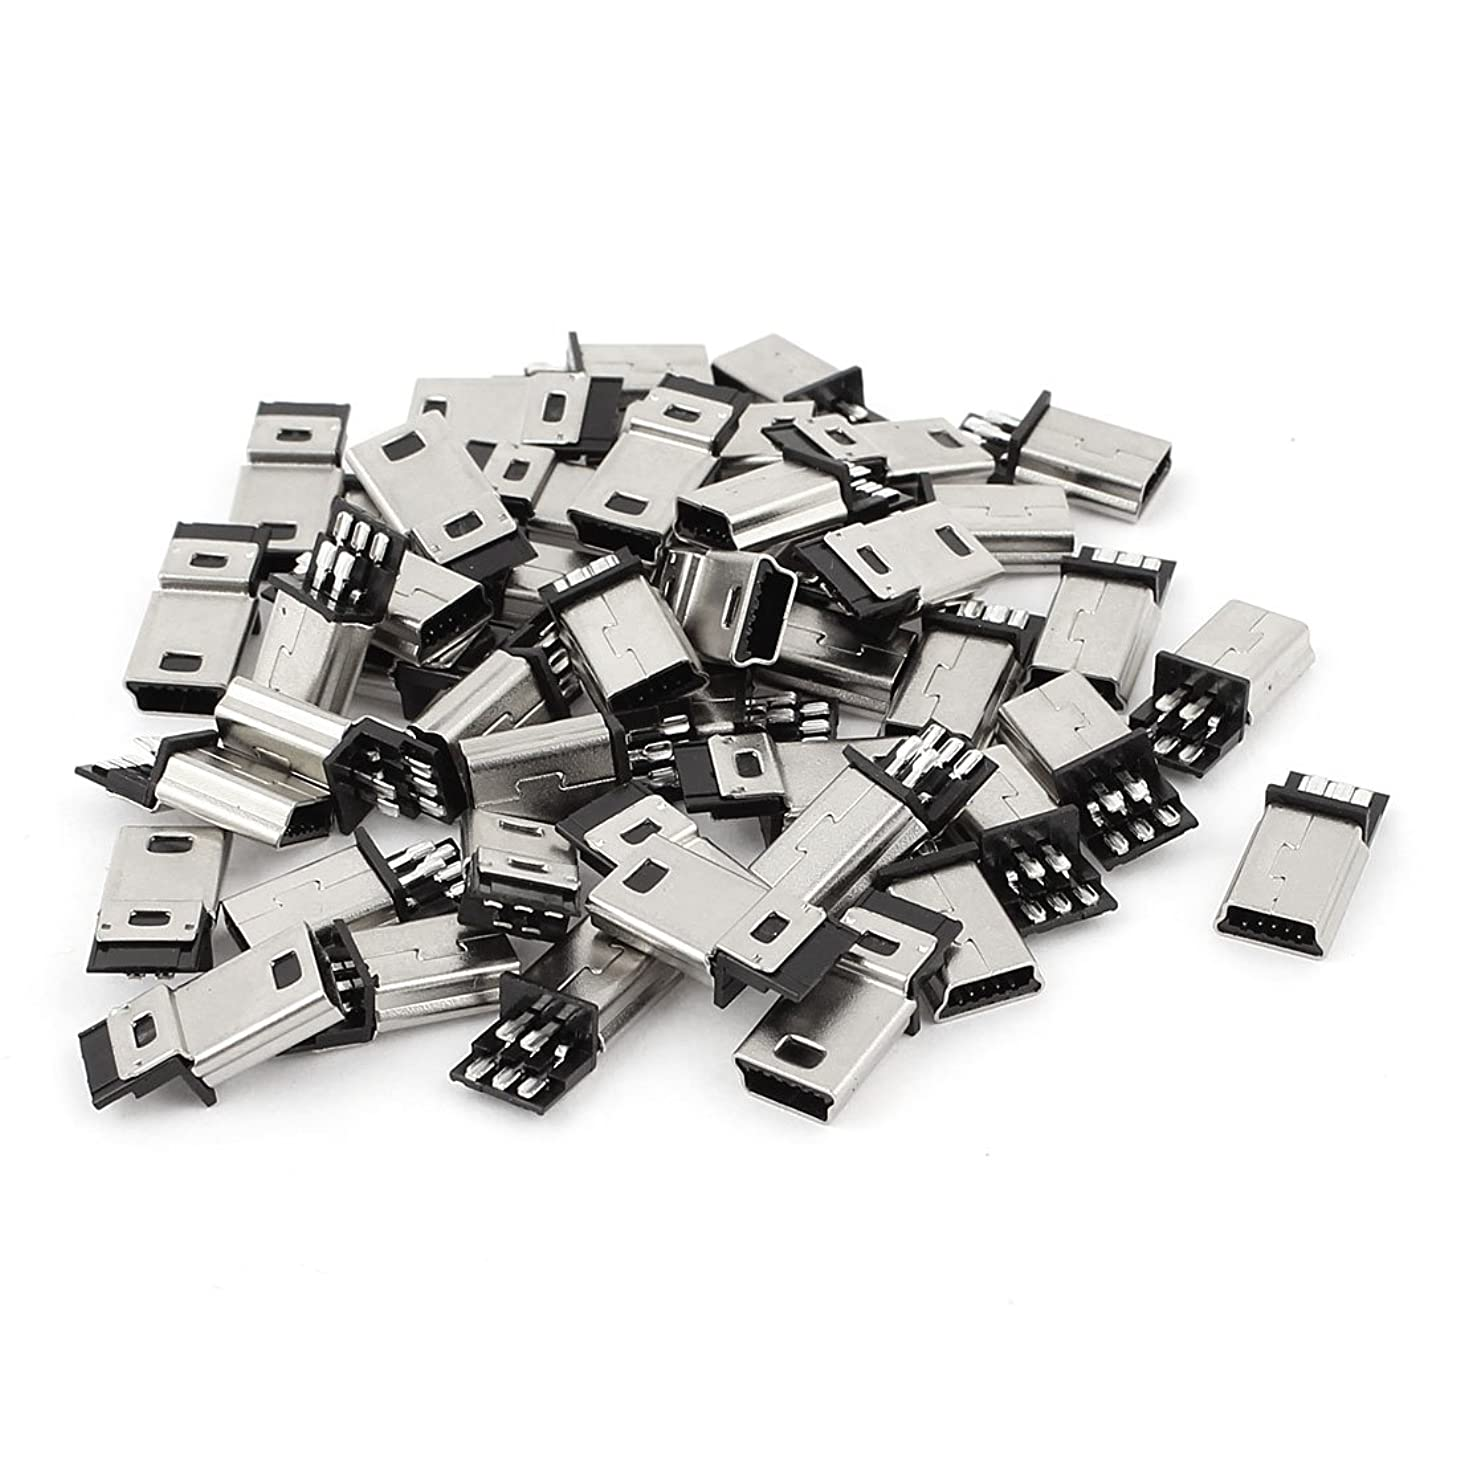 uxcell 45Pcs Mini USB 5pin Type B Male Connector PCB Mount Socket